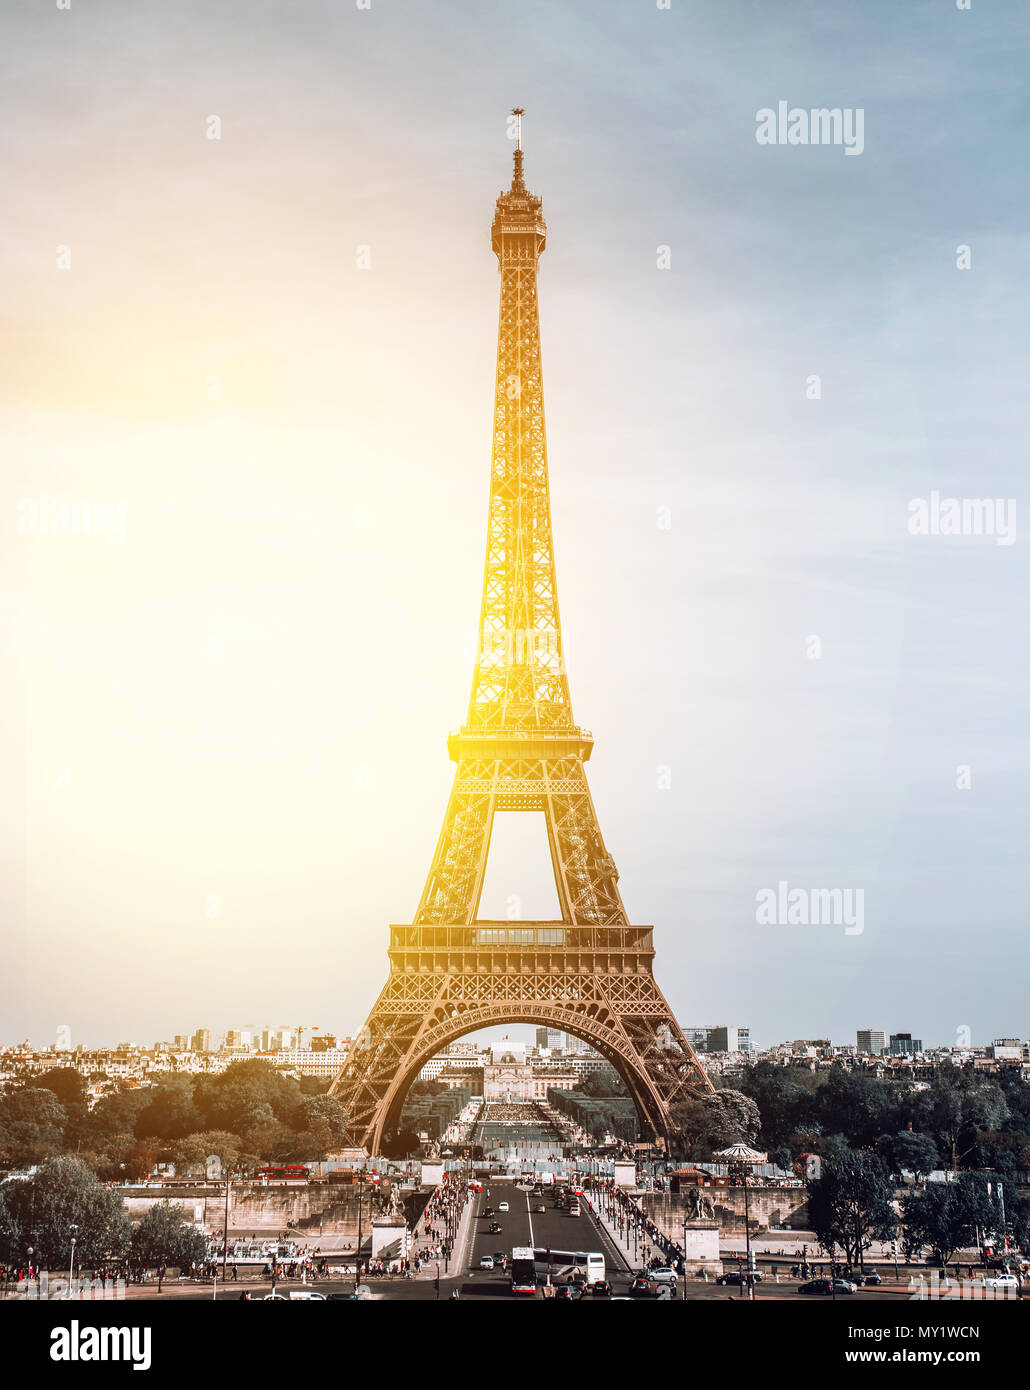 Vertical View on Eiffel Tower, Paris, France. Stock Photo